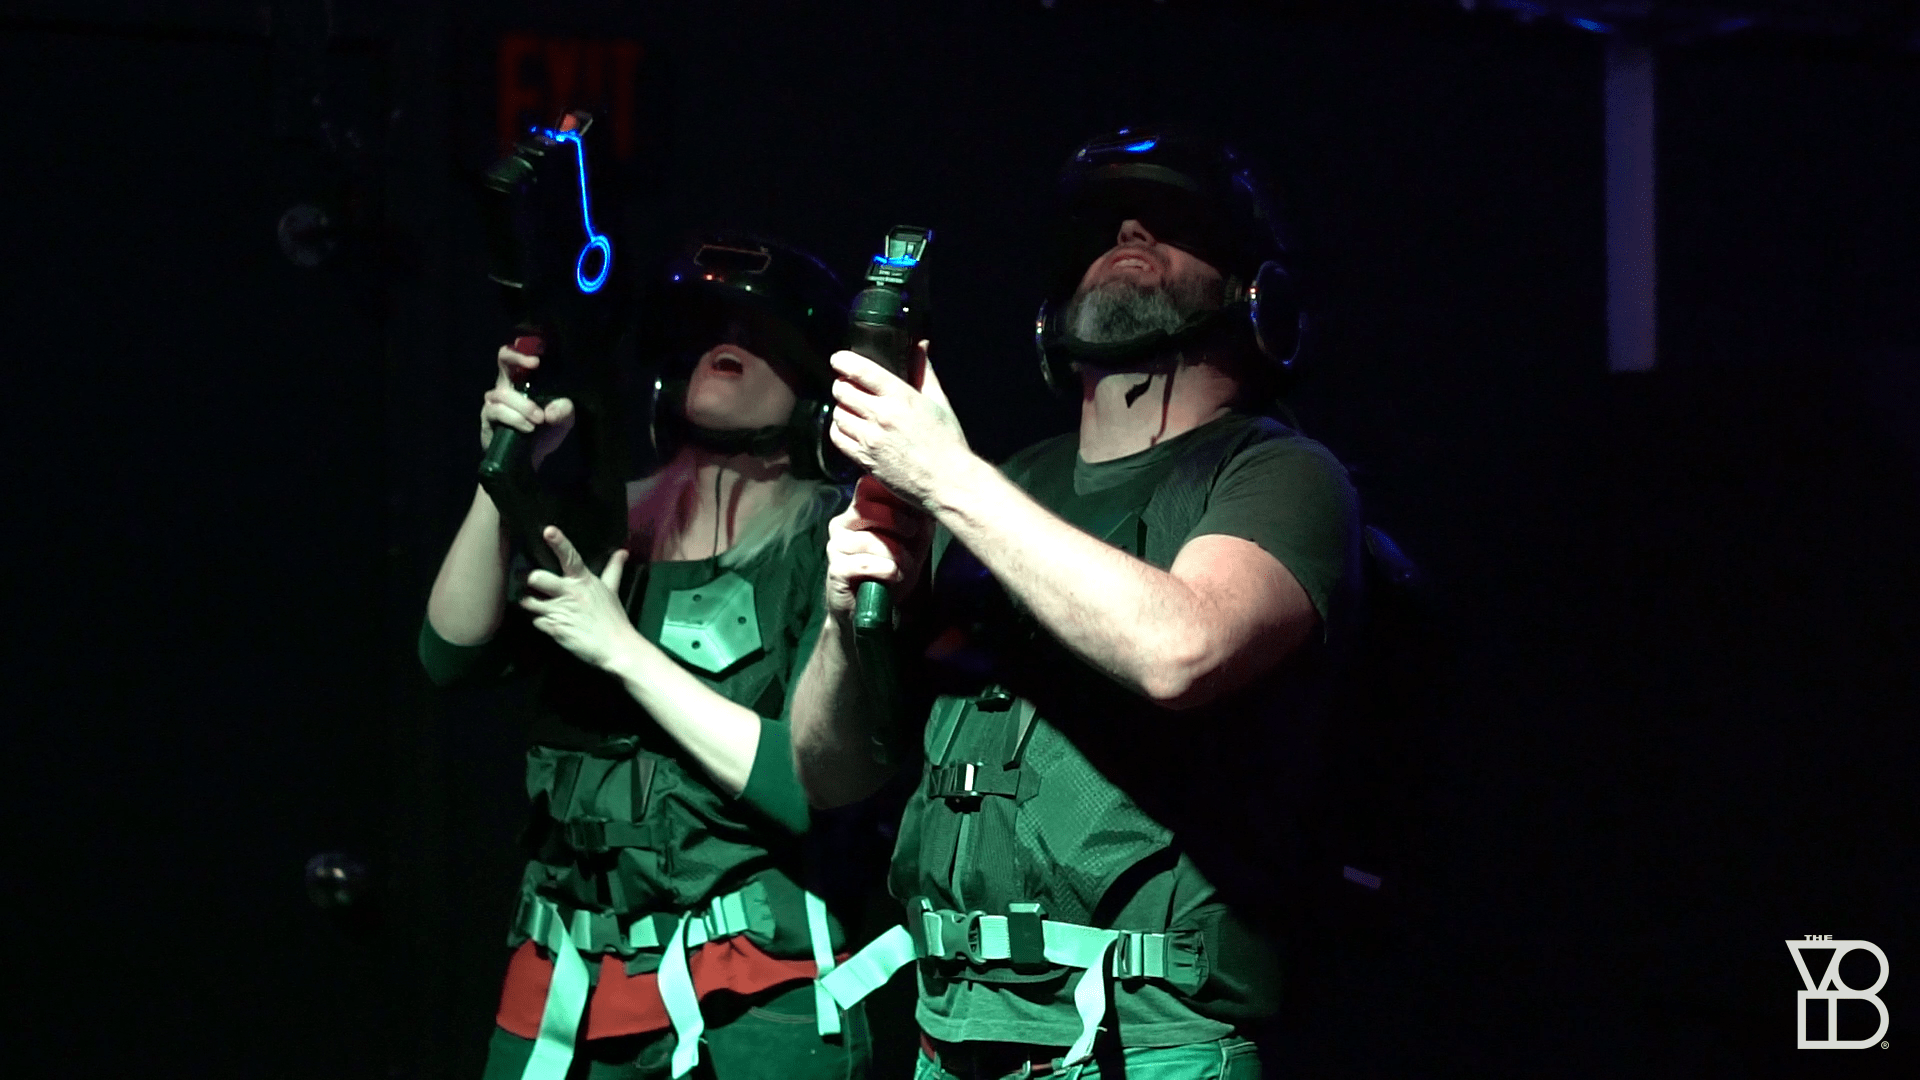 Check Out The Four NEW VR Experiences at the VOID...